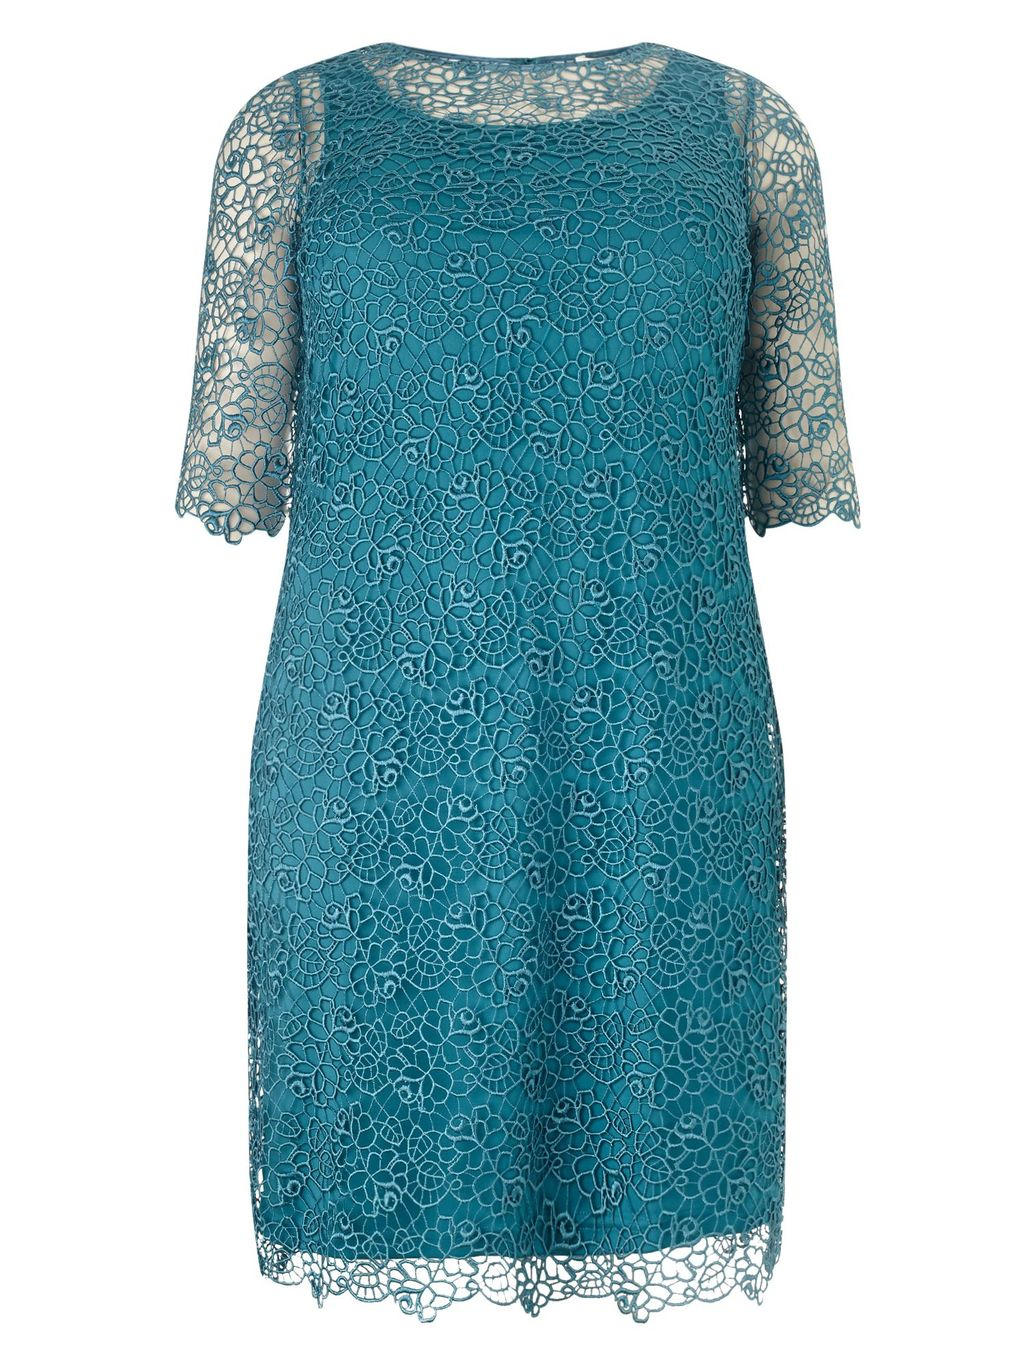 Nicolette Dress, Green - style: tunic; length: mid thigh; predominant colour: teal; fit: straight cut; fibres: polyester/polyamide - 100%; occasions: occasion; neckline: crew; sleeve length: half sleeve; sleeve style: standard; texture group: lace; pattern type: fabric; pattern size: standard; pattern: patterned/print; season: s/s 2016